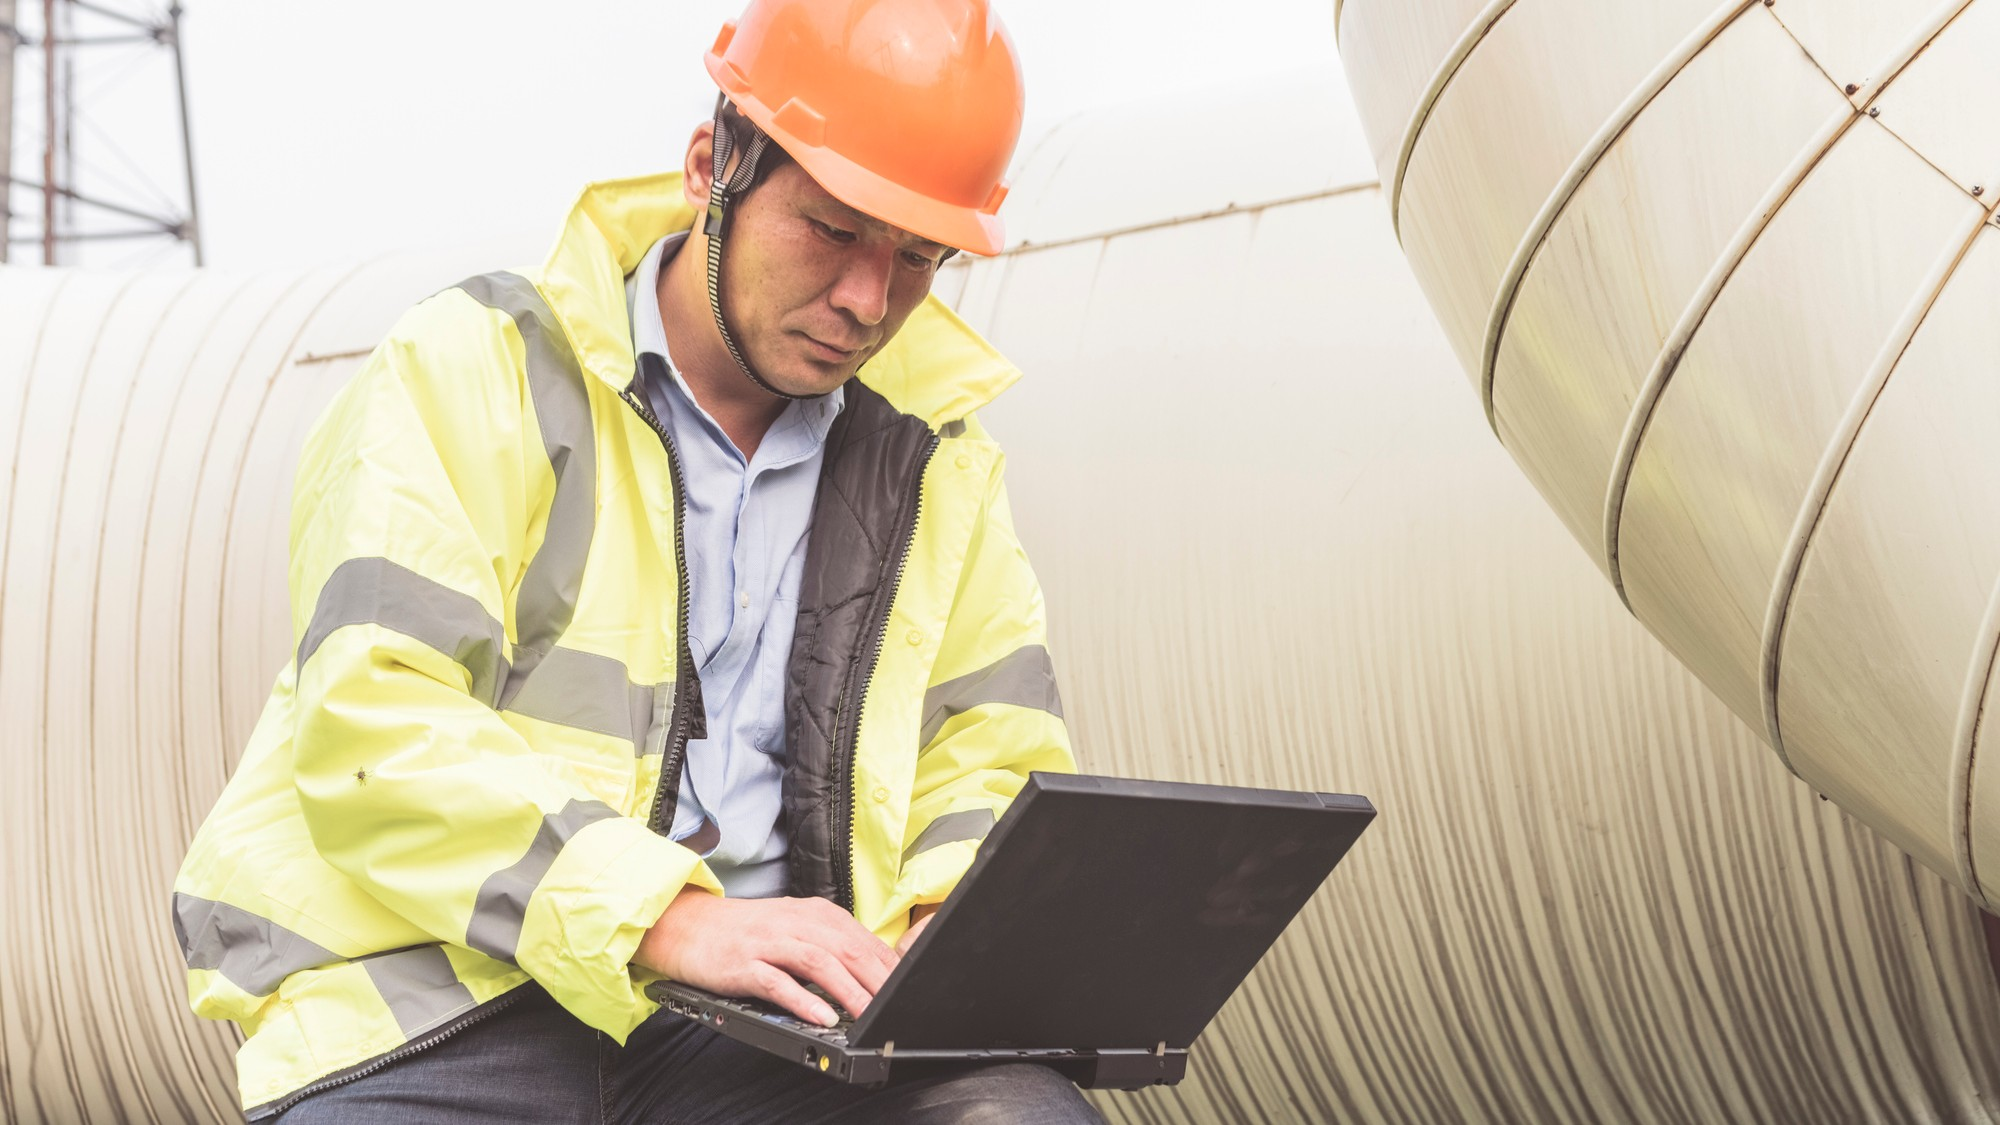 Natural gas plant engineers using laptop